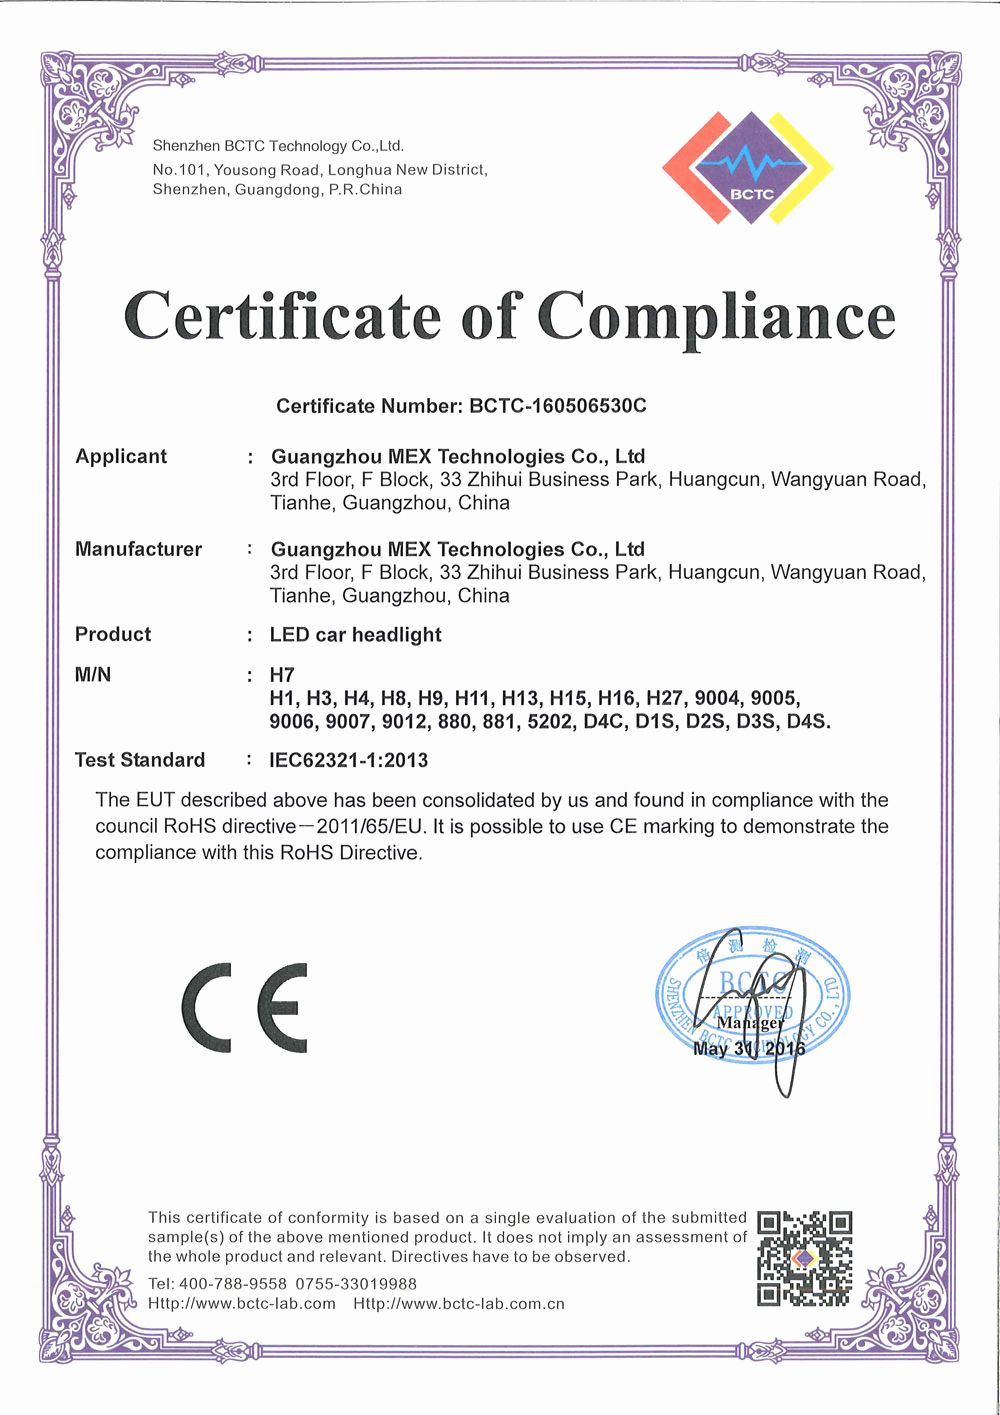 Certificate Of Compliance Template Inspirational Rohs Certificate Of Pliance Guangzhou Mex